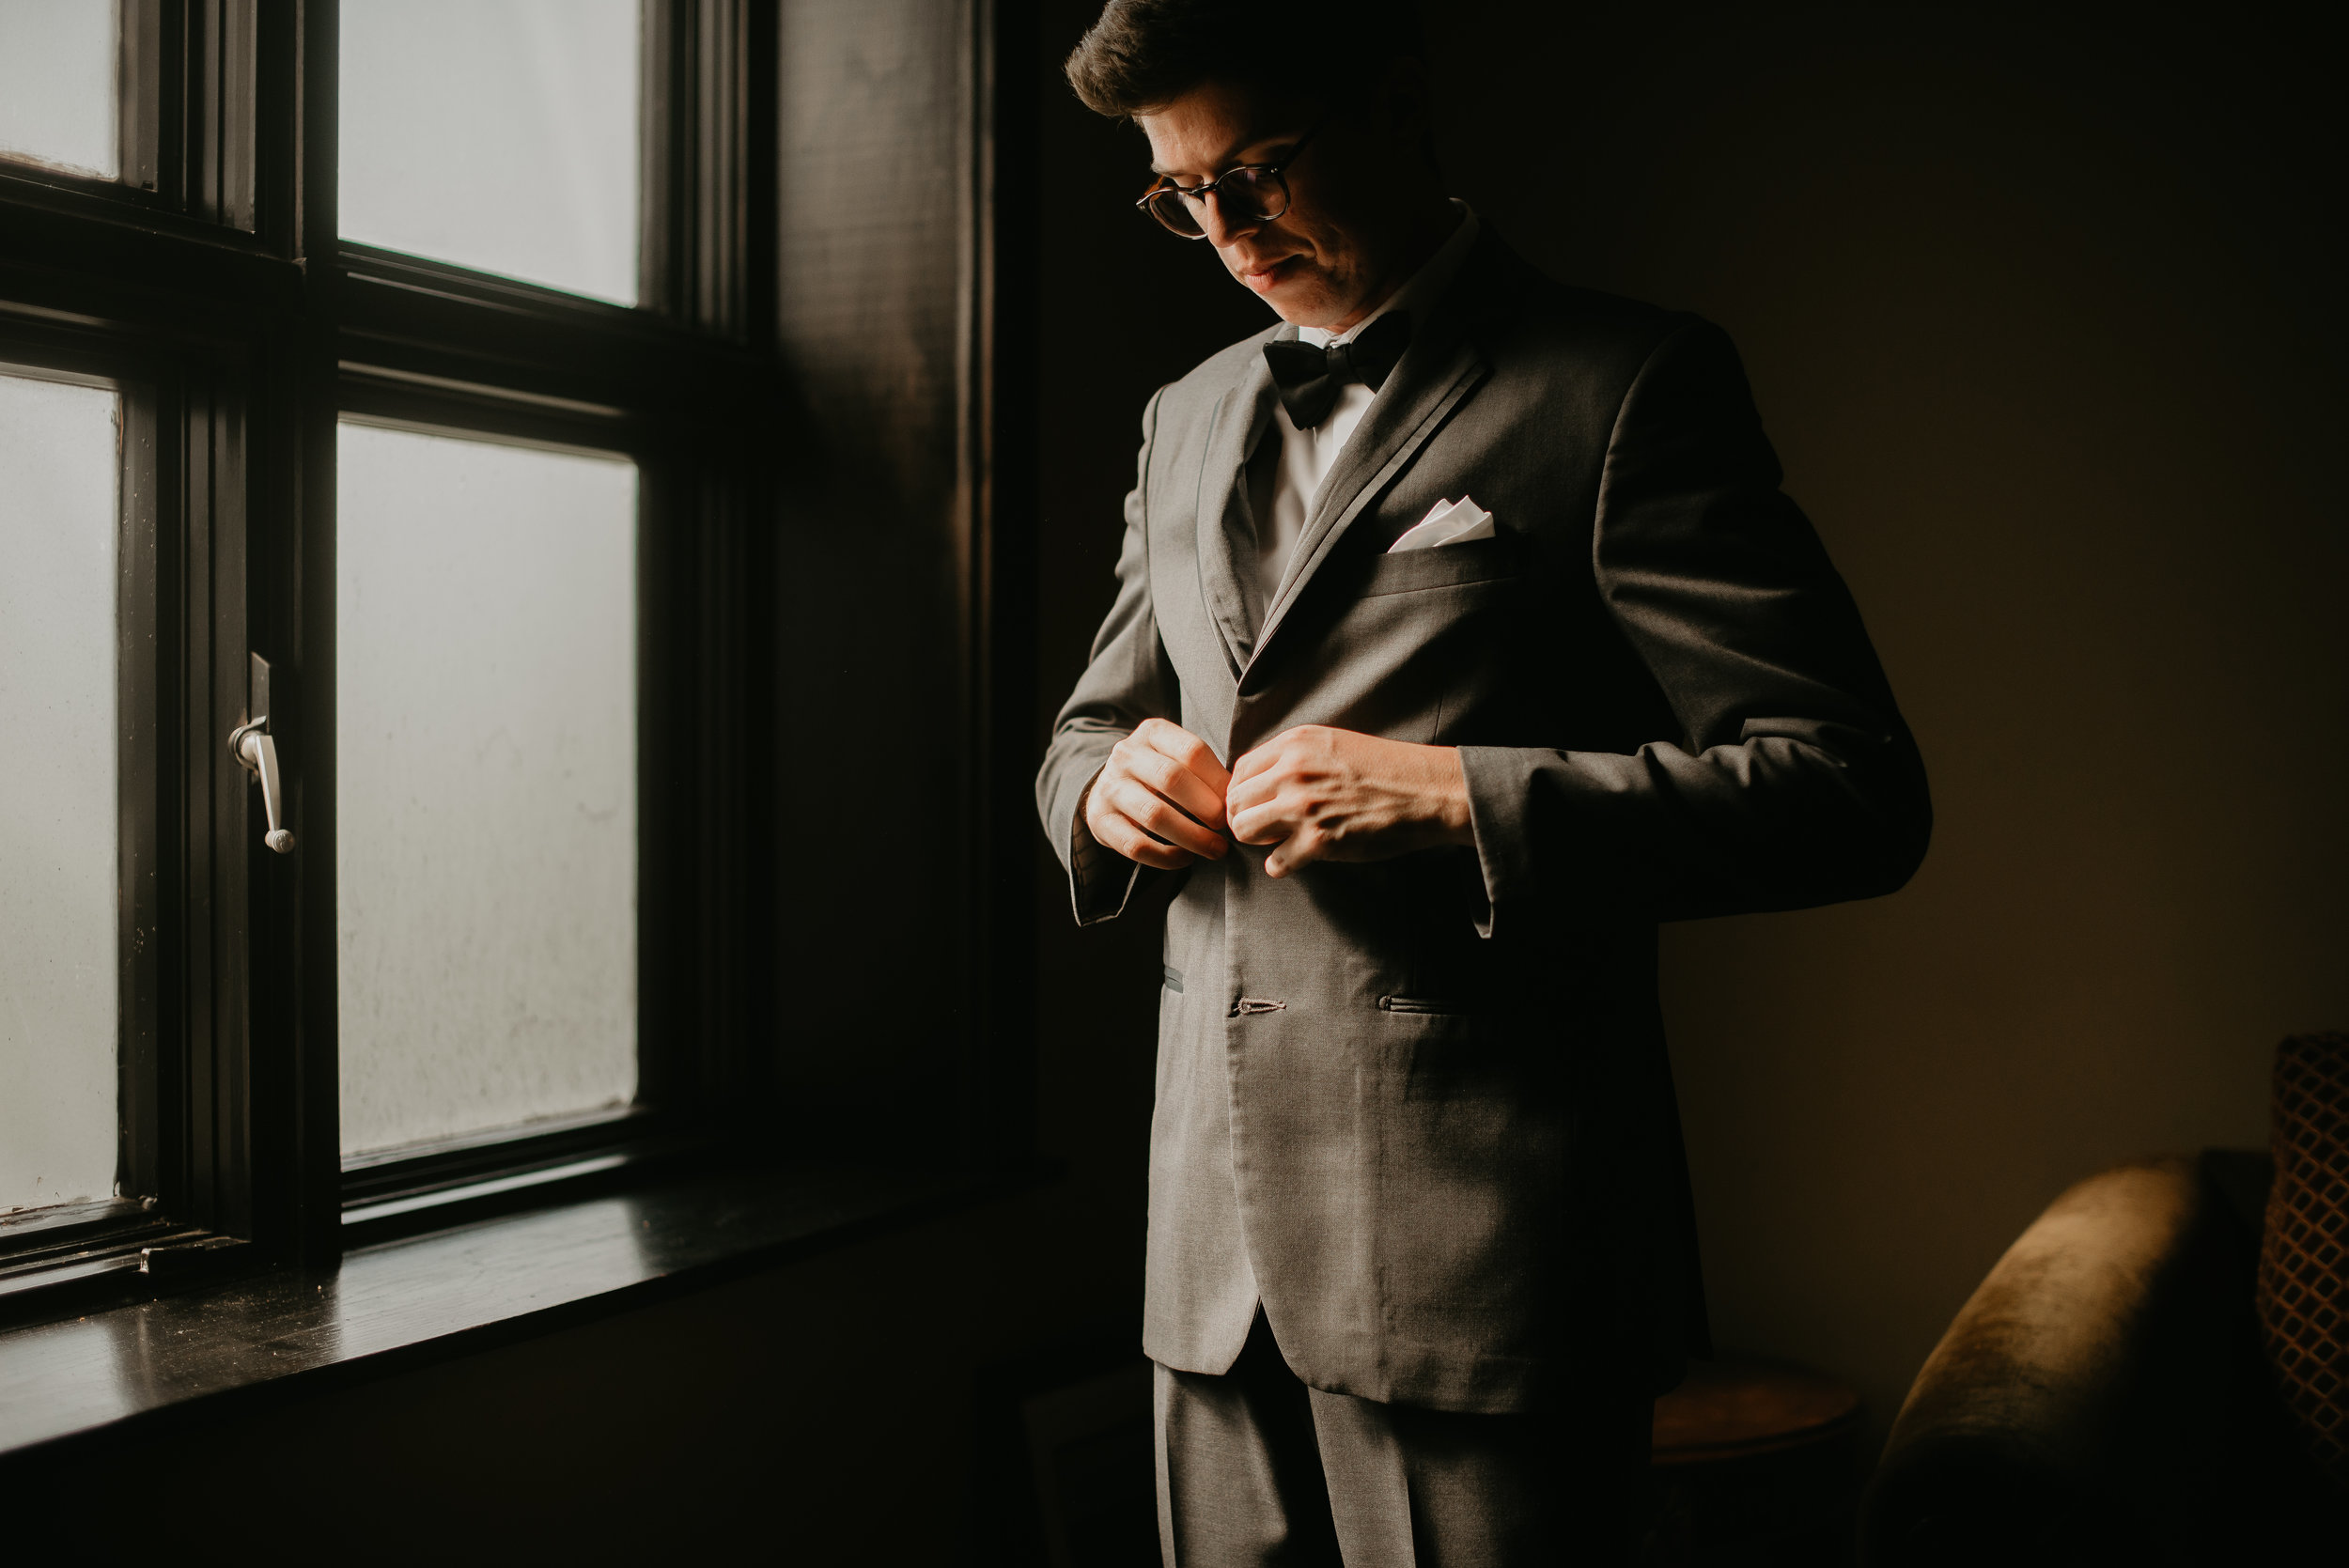 Groom buttoning suit jacket before wedding